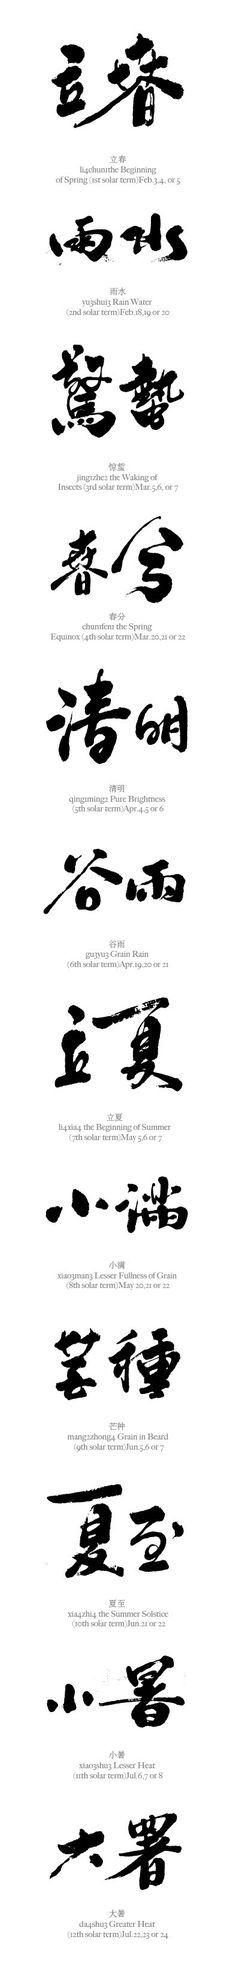 Chinese Calligraphy with translations. Traditional Chinese characters are beautiful! Chinese Calligraphy with translations. Traditional Chinese characters are beautiful! Calligraphy Logo, Typography Letters, Lettering, Chinese Calligraphy, Caligraphy, Gfx Design, Font Design, Design Web, Chinese Fonts Design